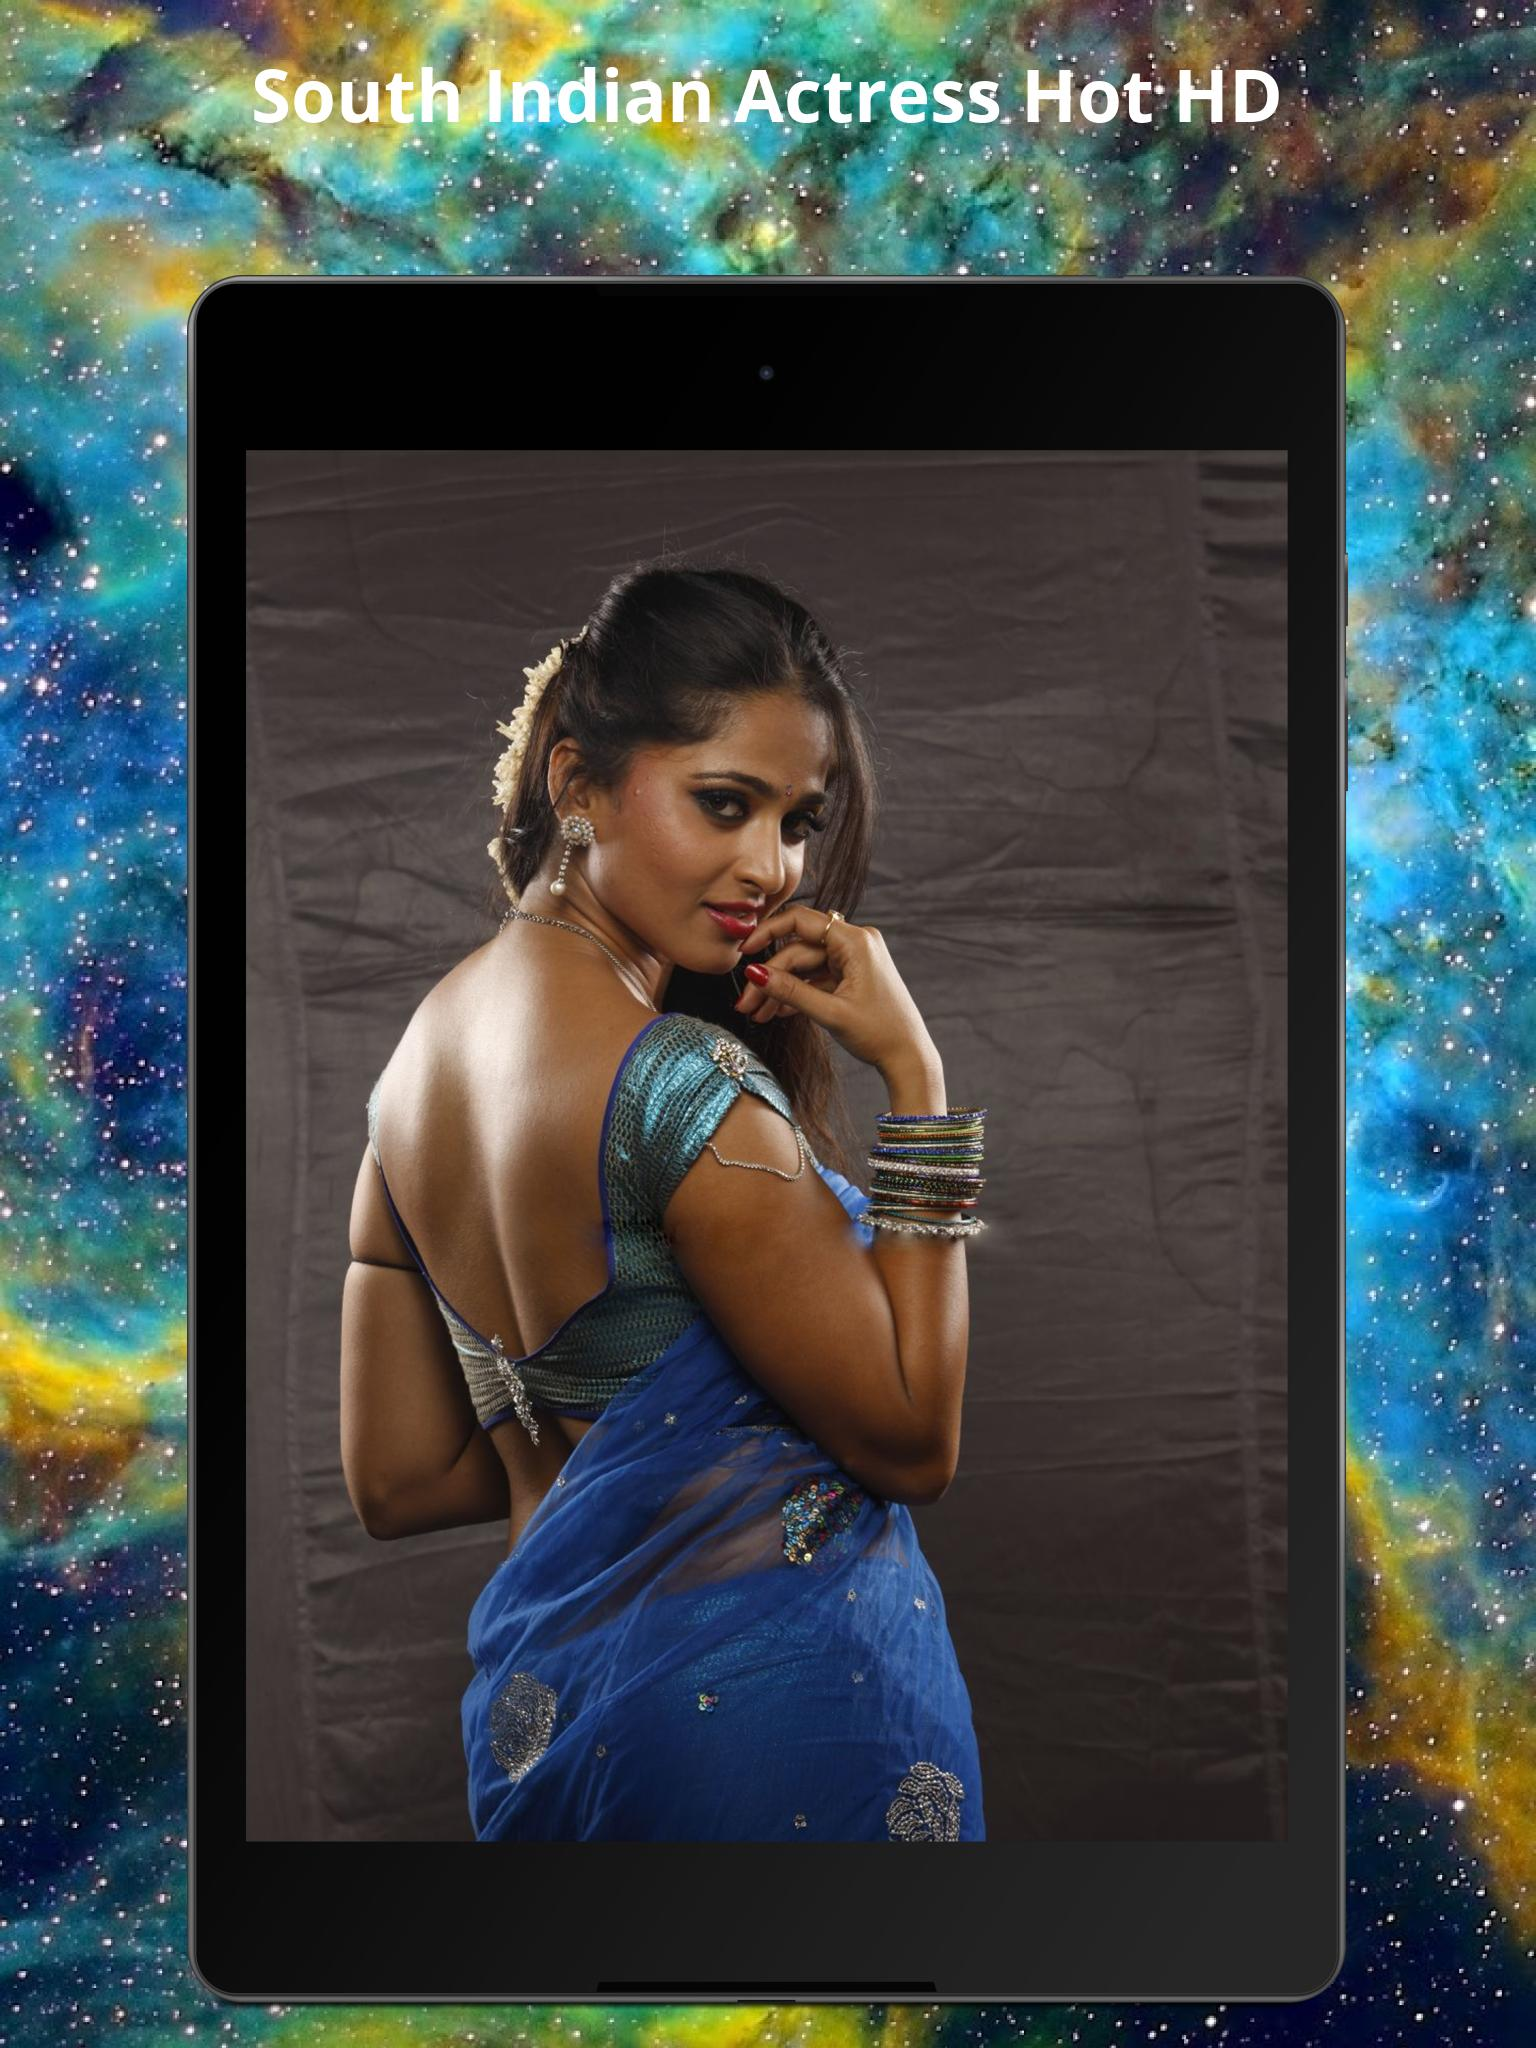 South Indian Actress for Android - APK Download